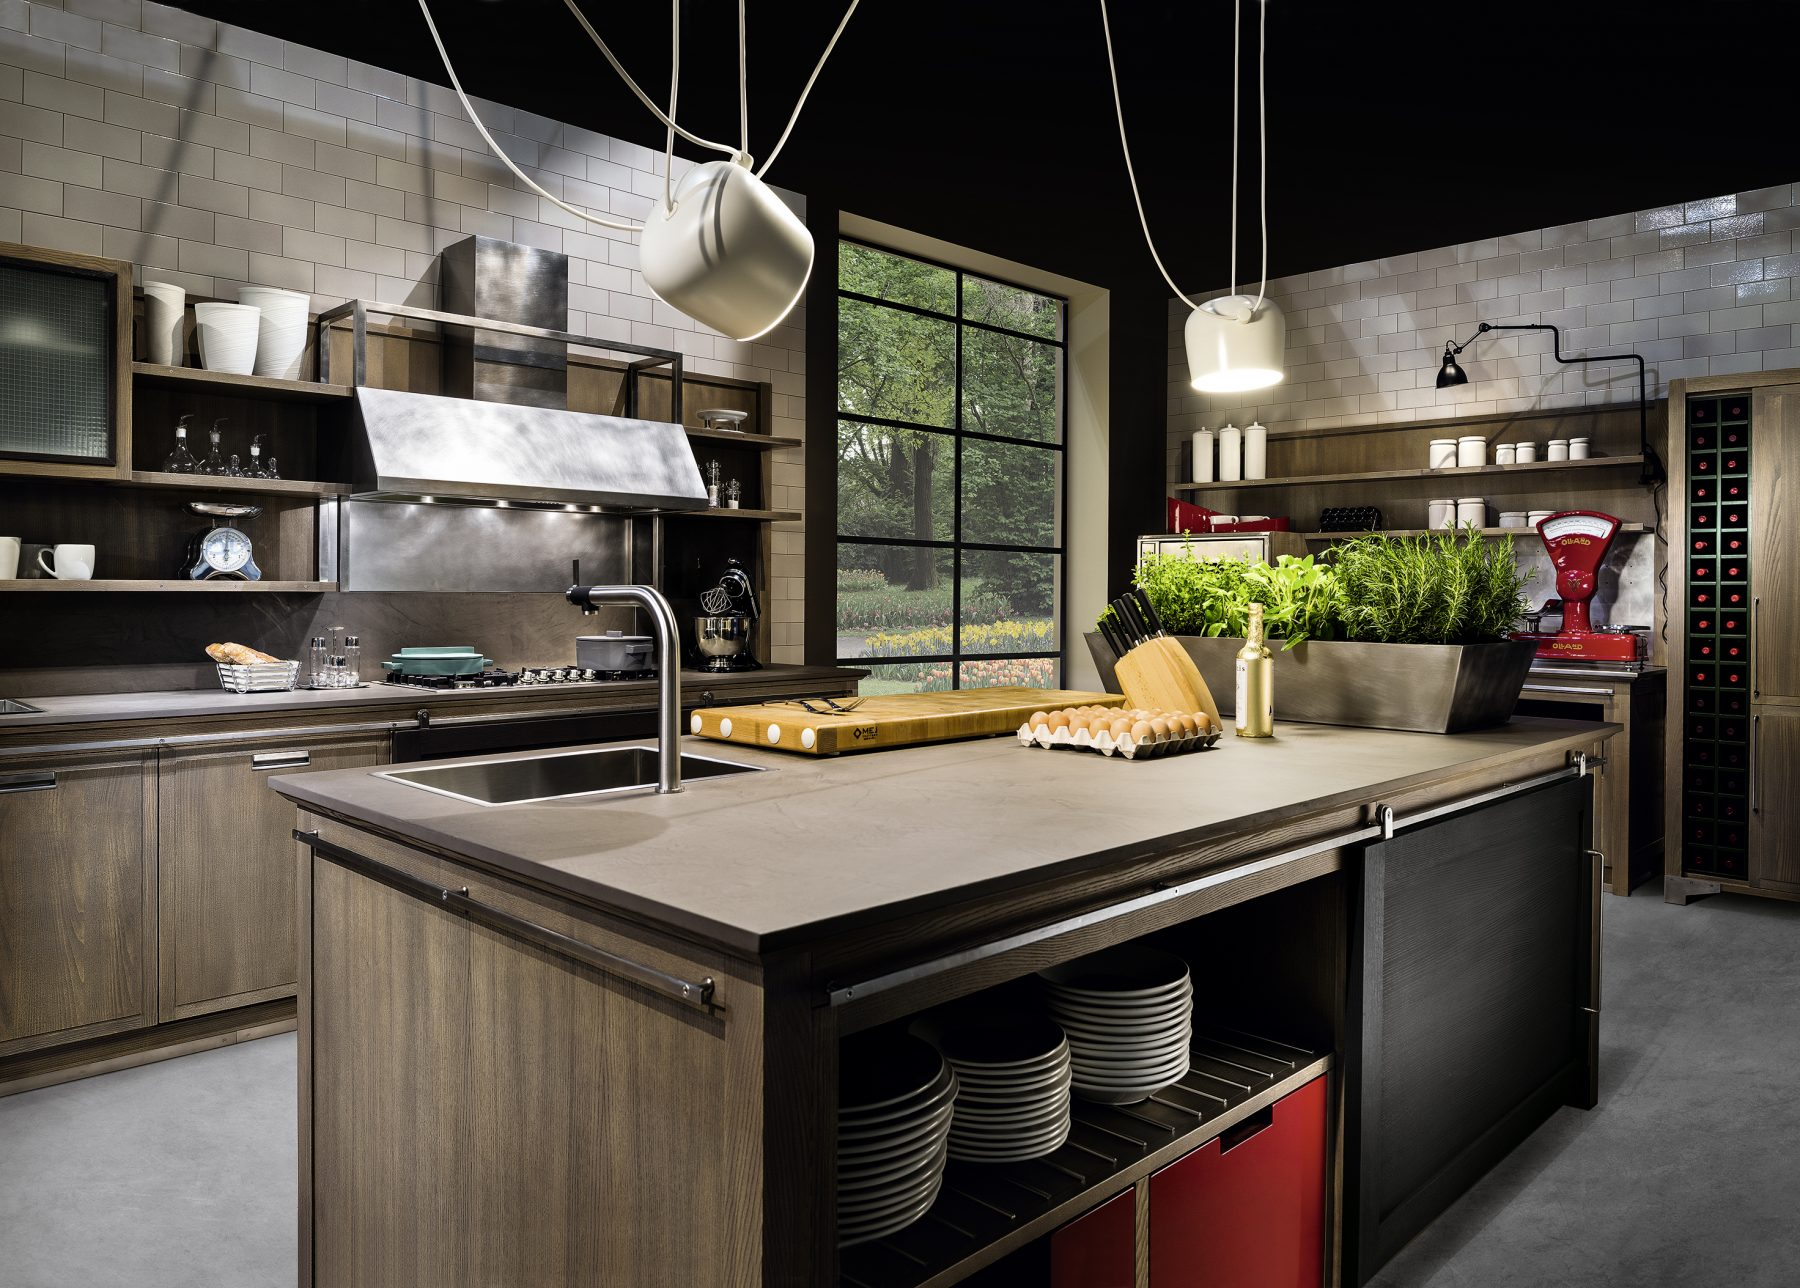 Cucina Stile Industrial Chic Industrial Chic L Ottocento